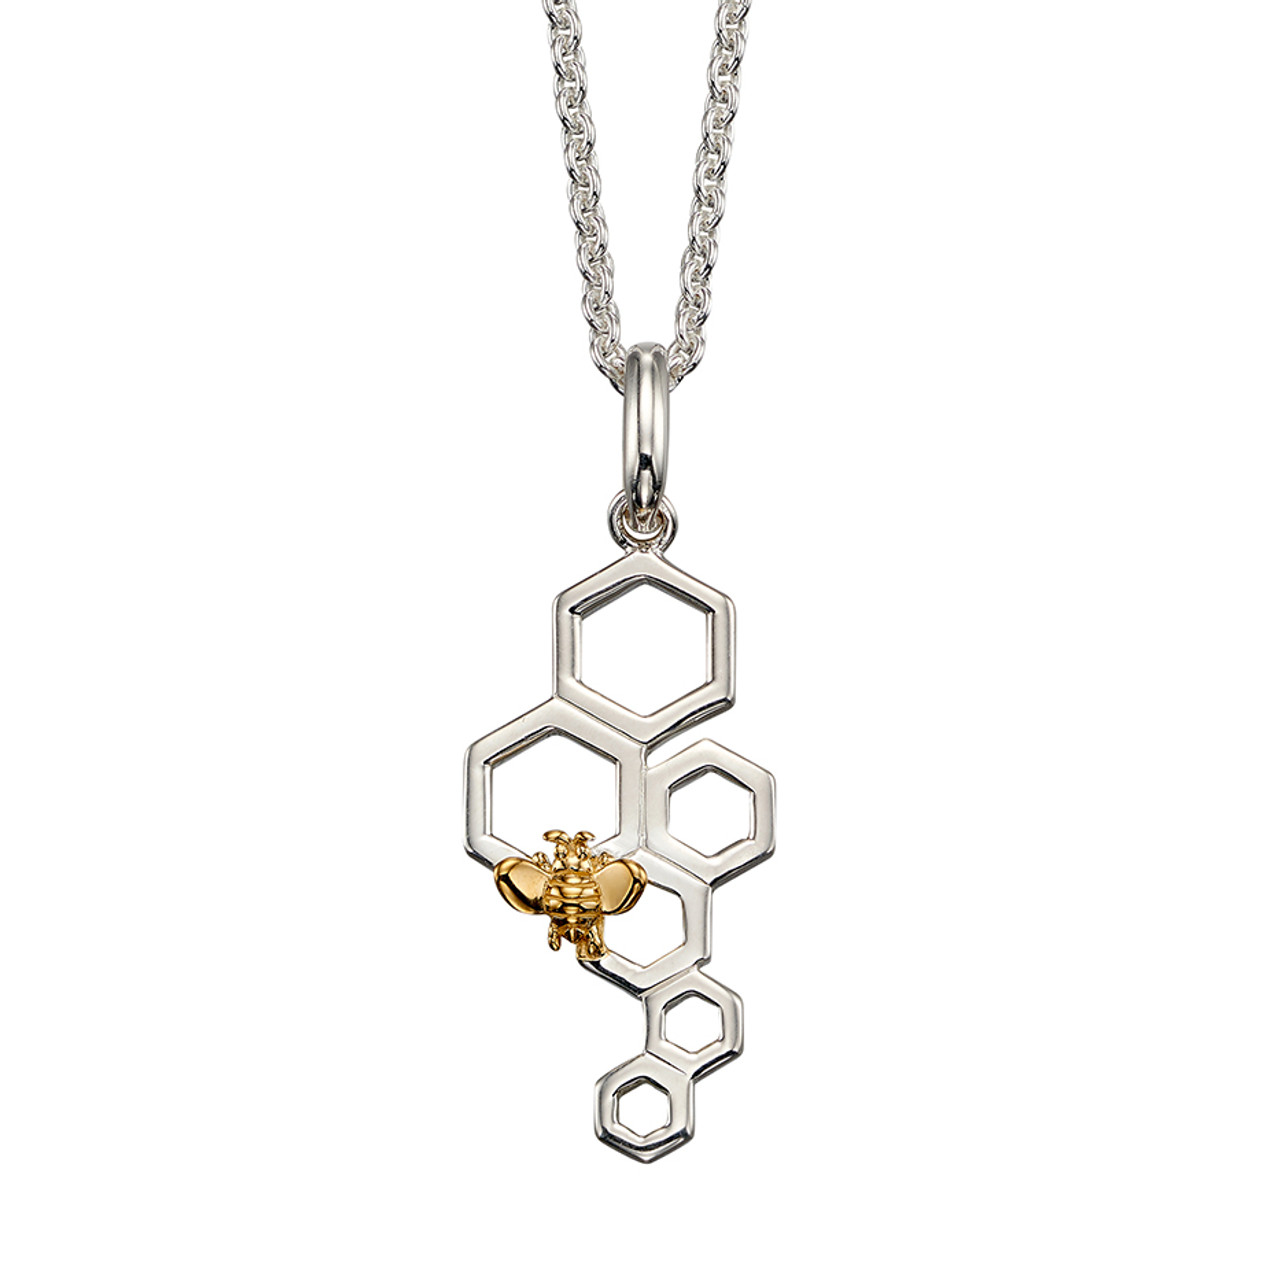 Silver & Gold Plated Bee Pendant on Chain